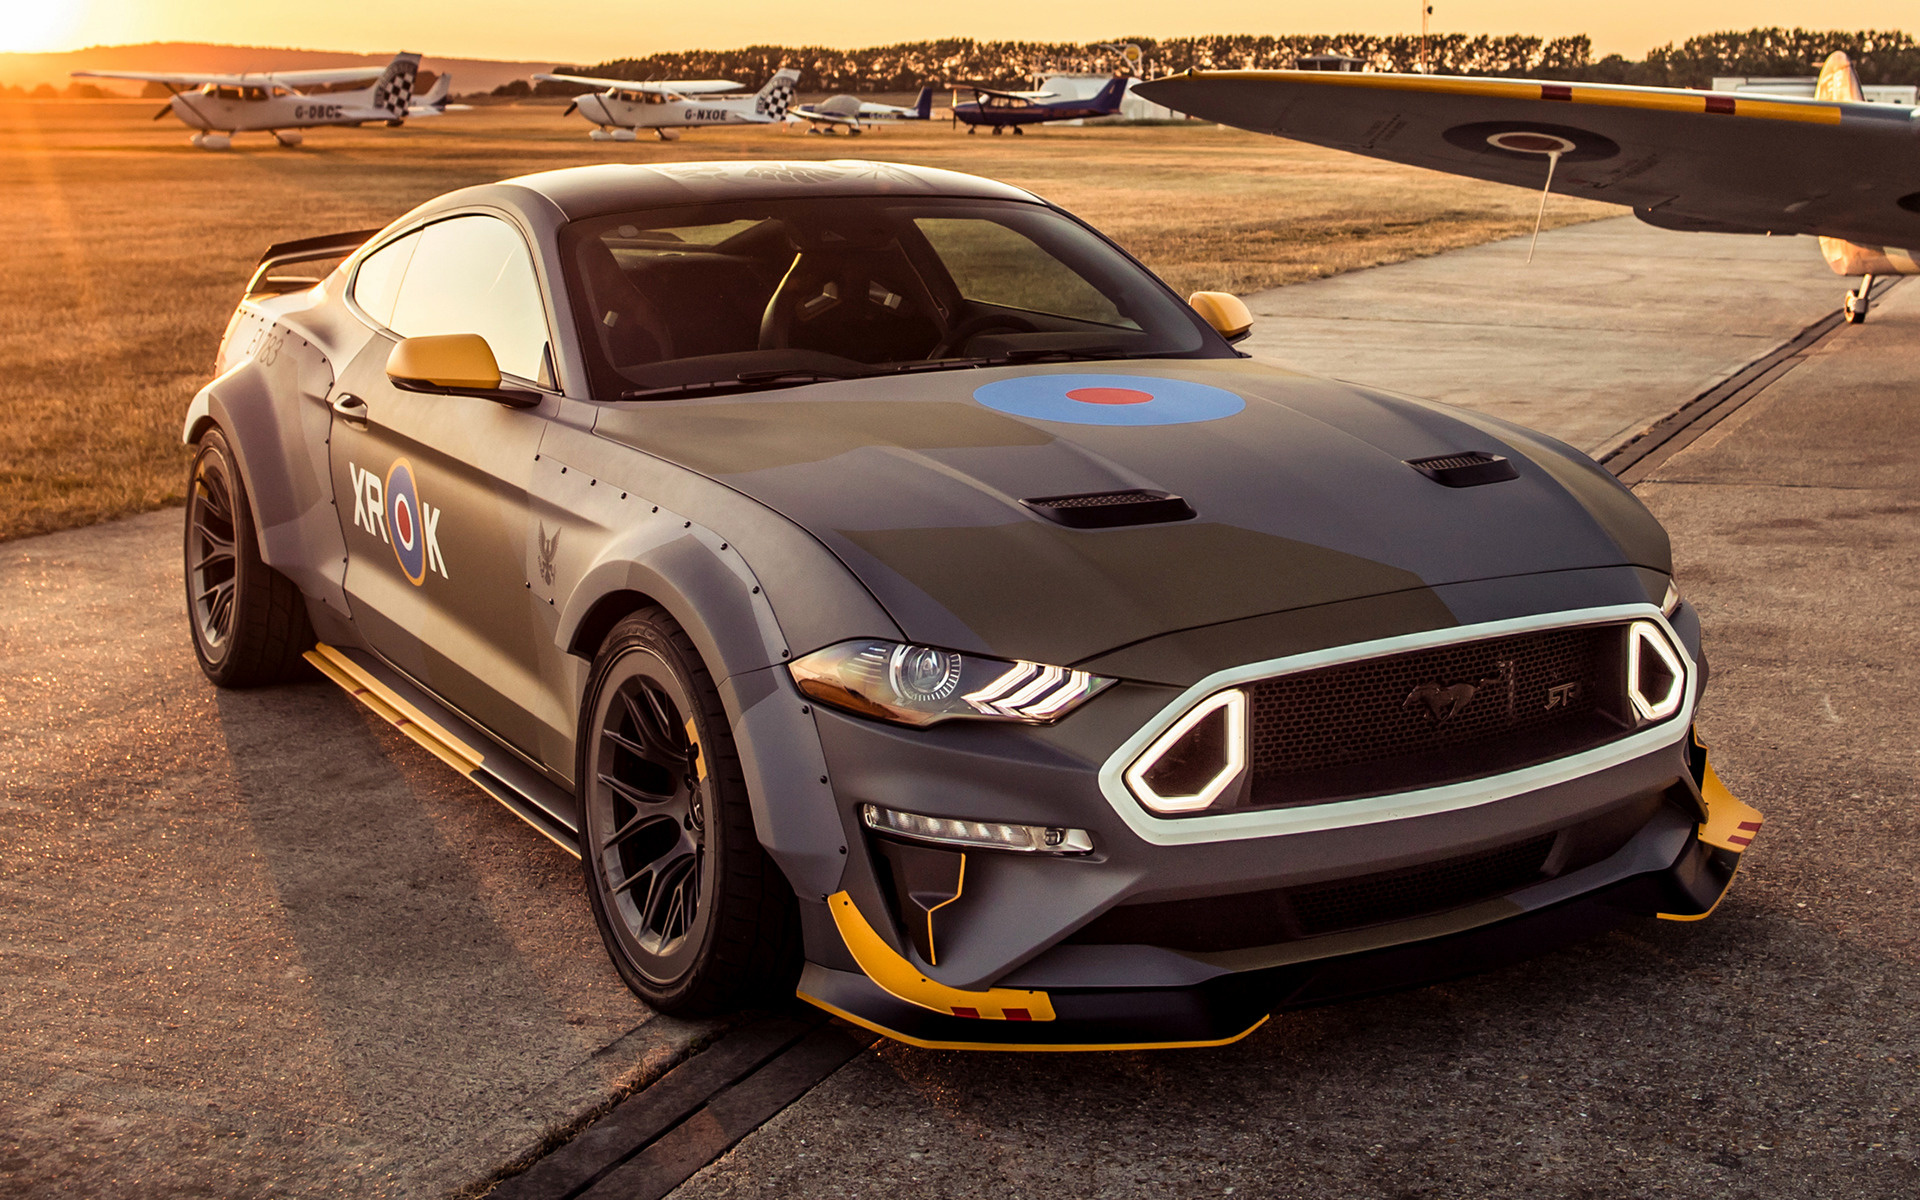 2018 ford eagle squadron mustang gt wallpapers and hd images car